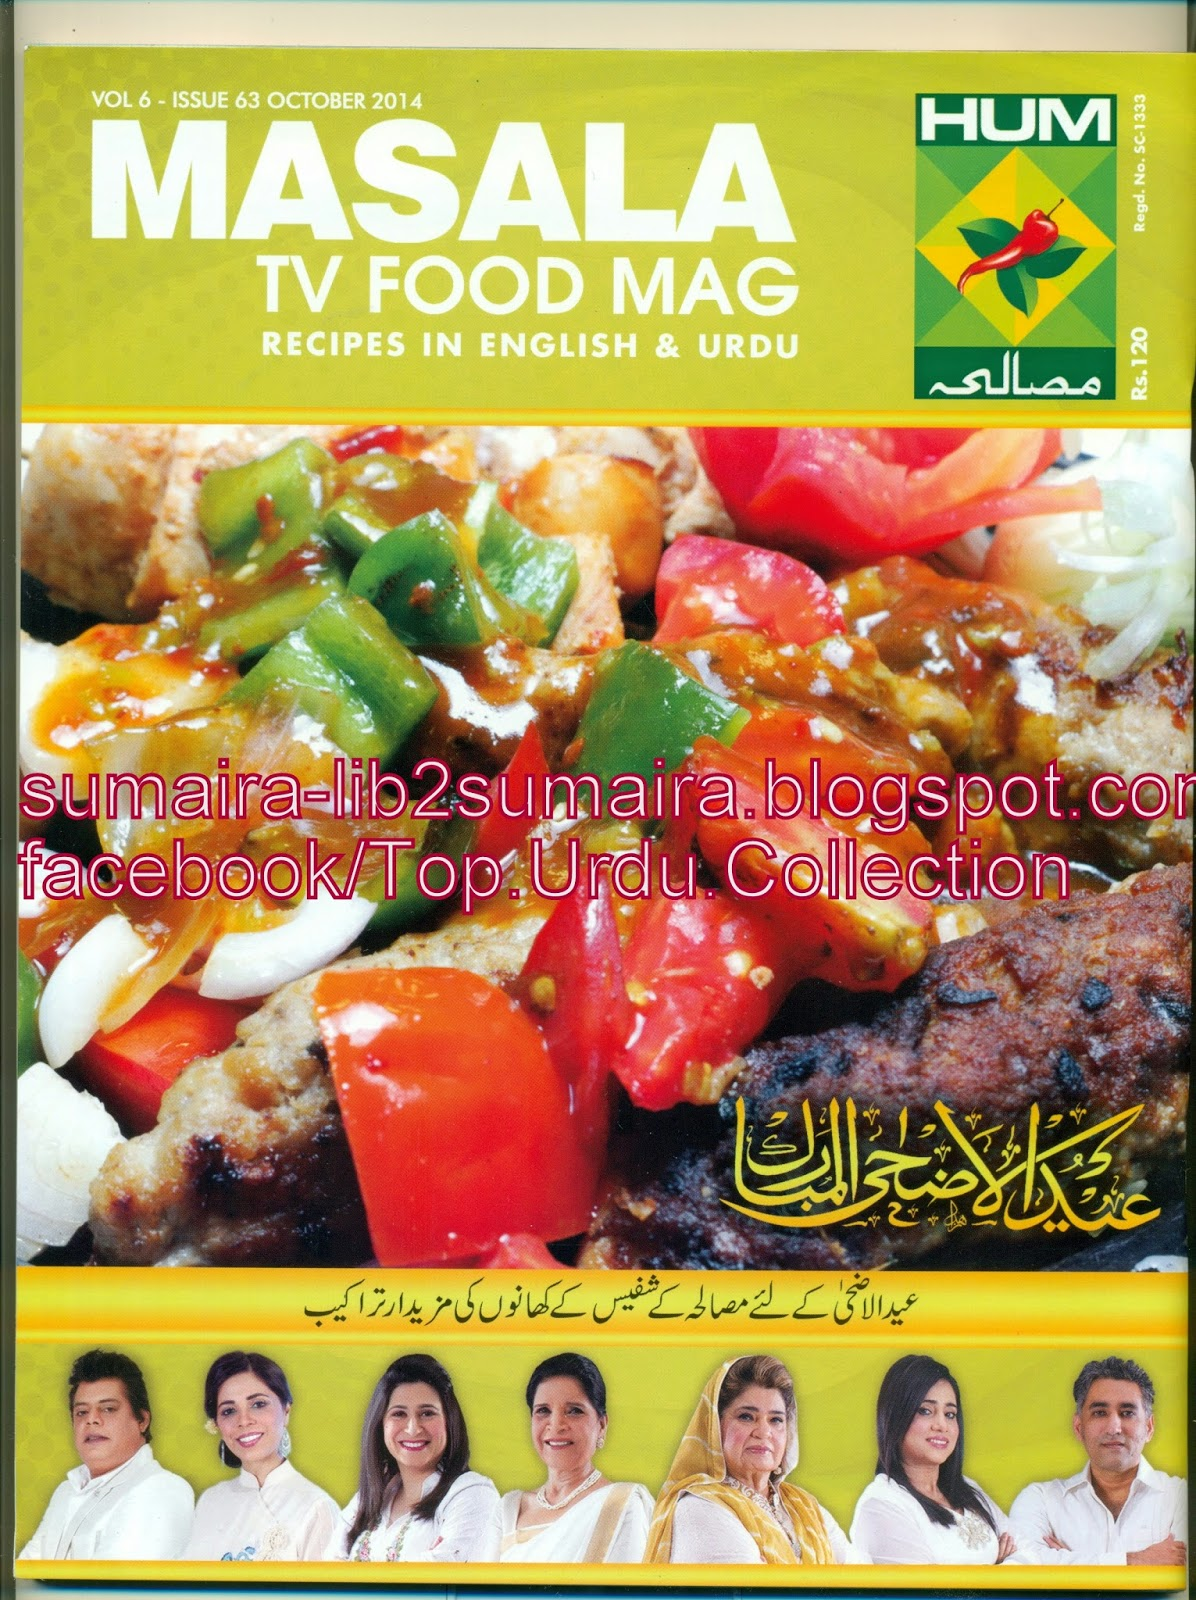 scan0009 1 - Masala Tv Food Mag October 2014